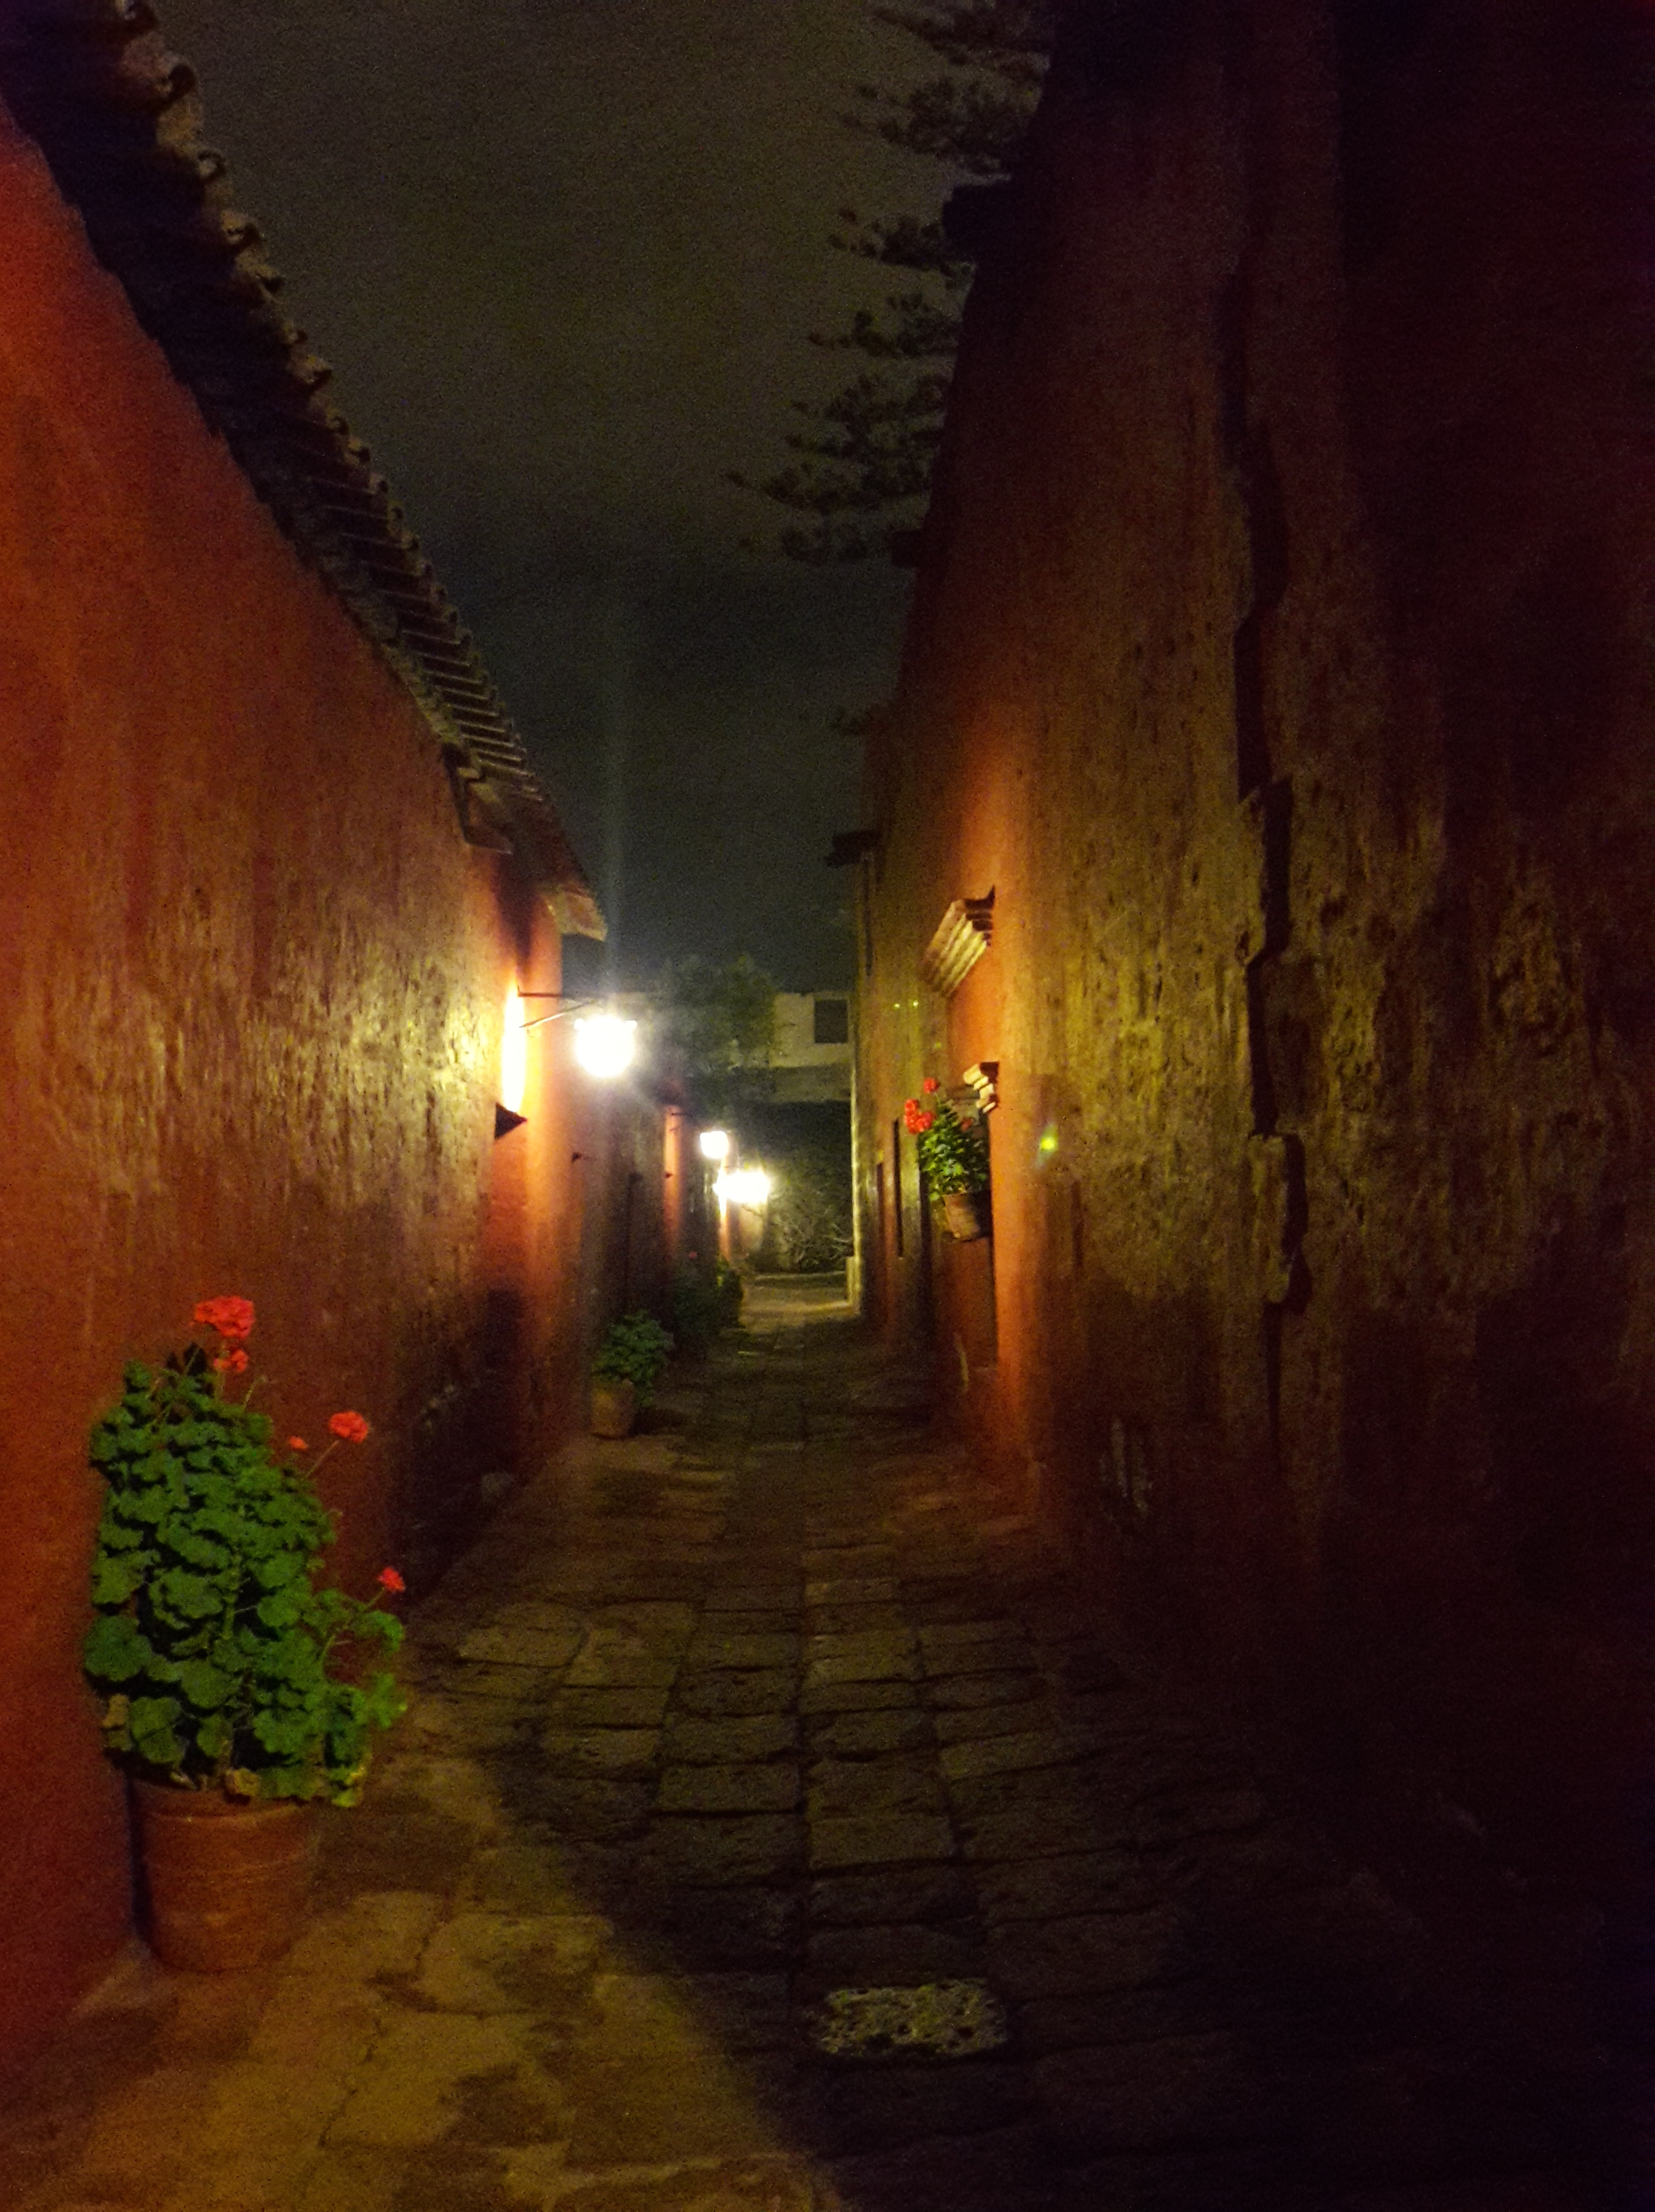 a narrow street with orange walls and flower pots with red flowers